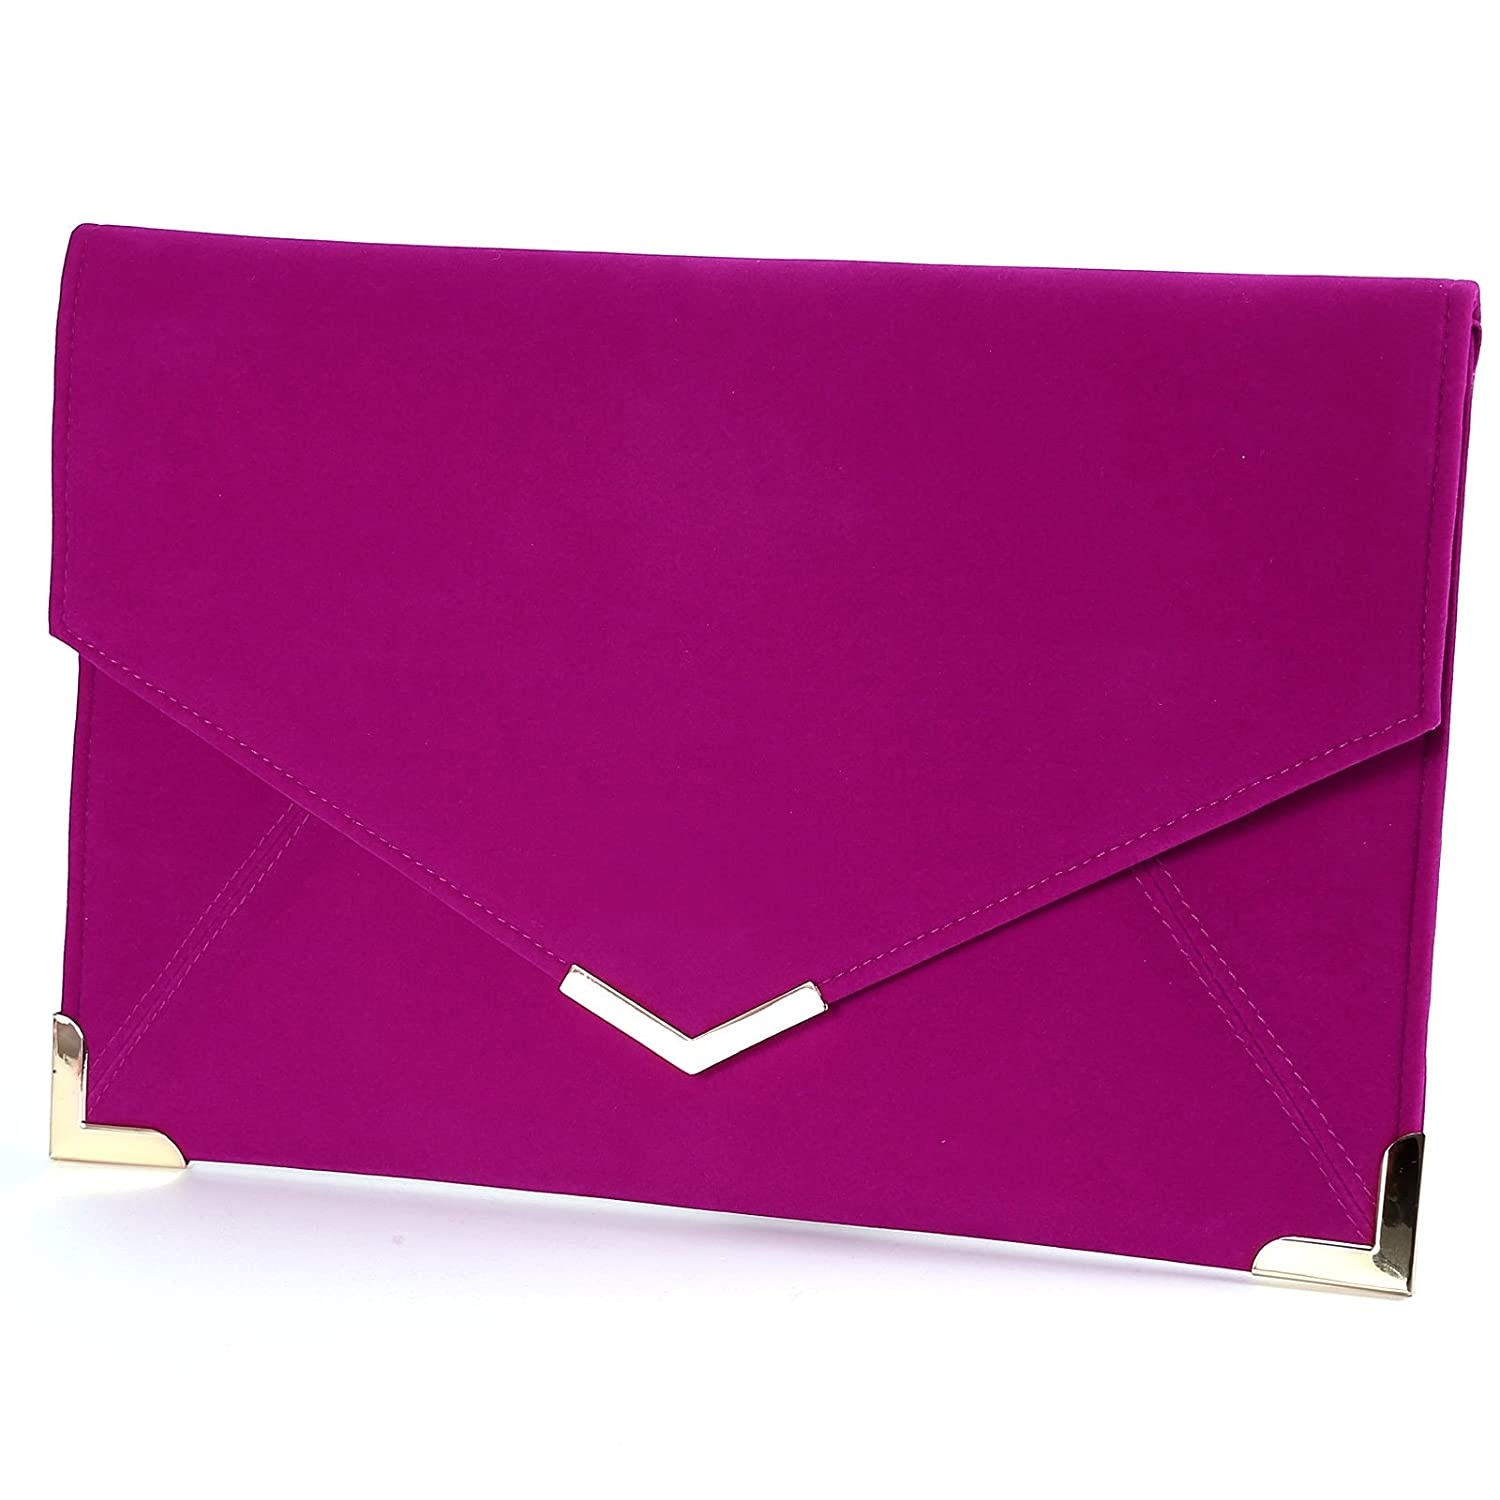 Anladia Velvet Envelope Clutch Large Evening Bag Women Bag Metal-Trim Shoulder Bag